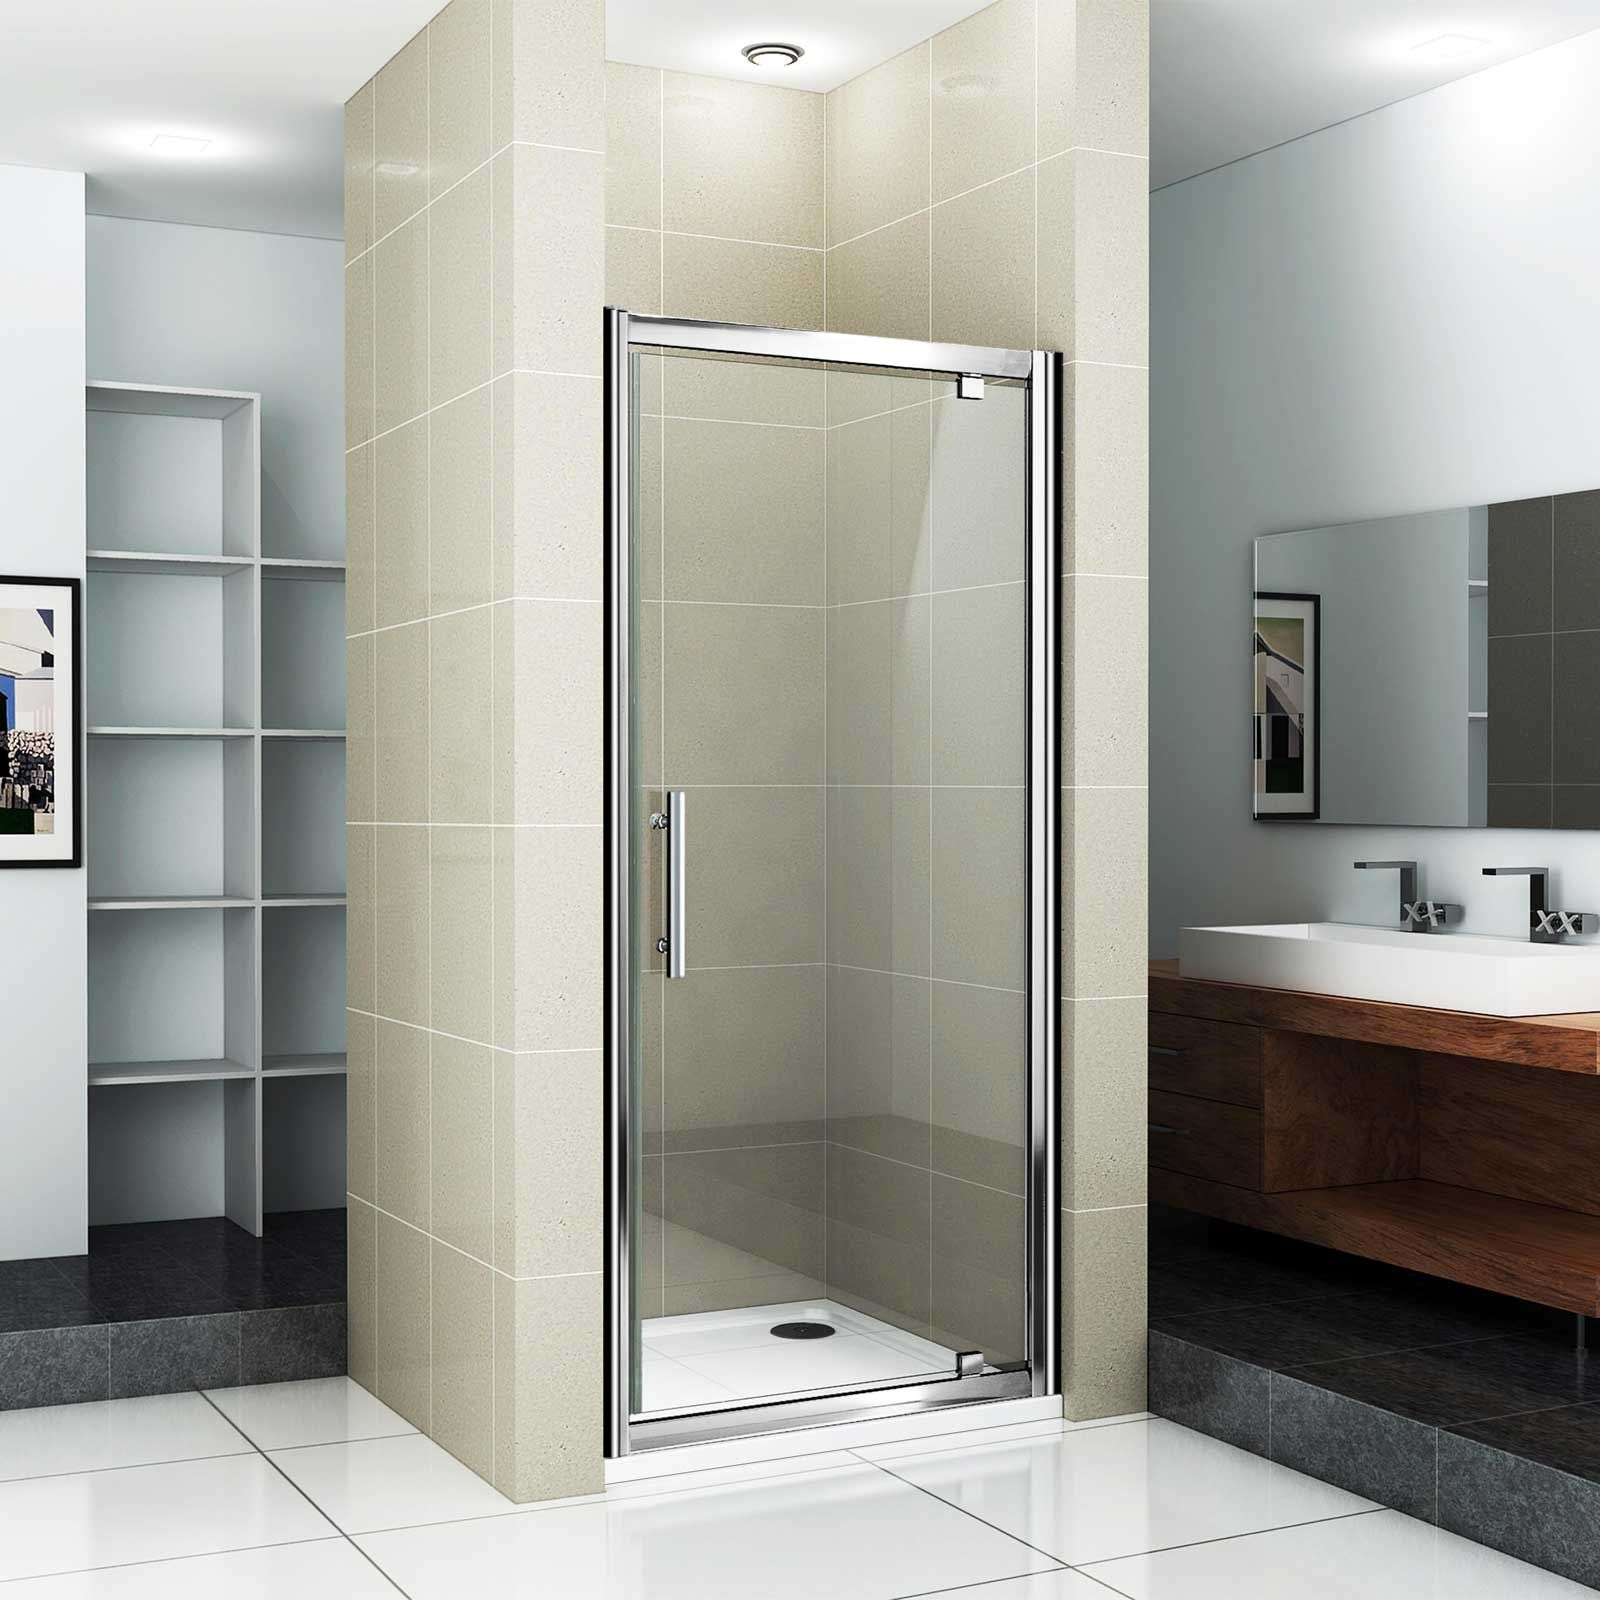 Replace Shower Stall Doors With Curtain